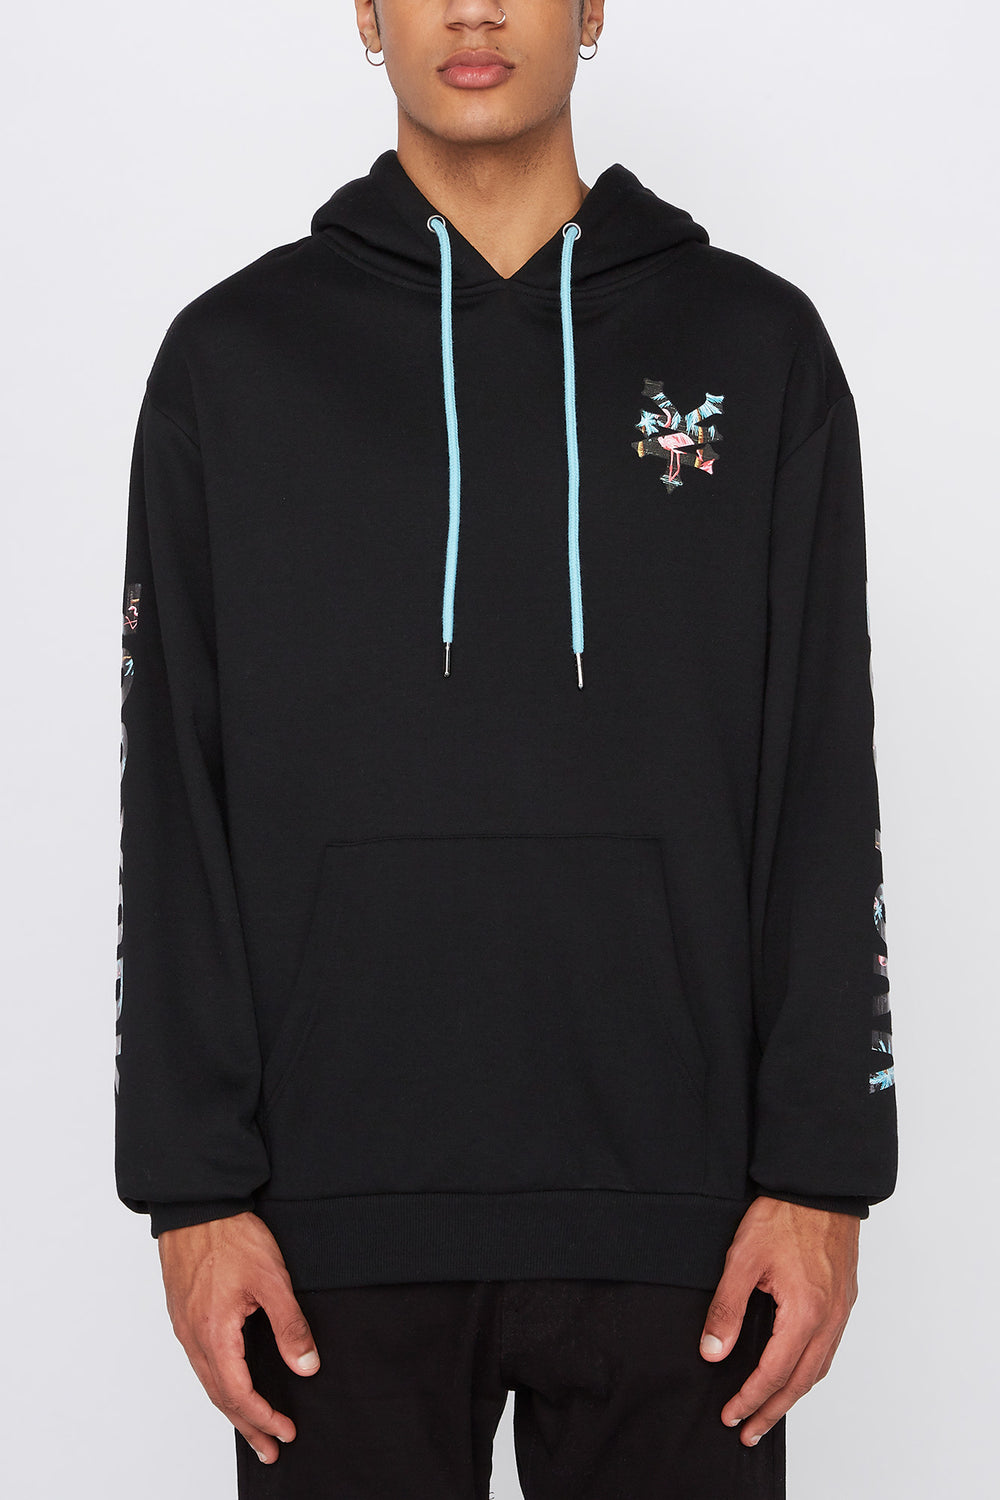 Zoo York Mens Pink Flamingo Logo Hoodie Black